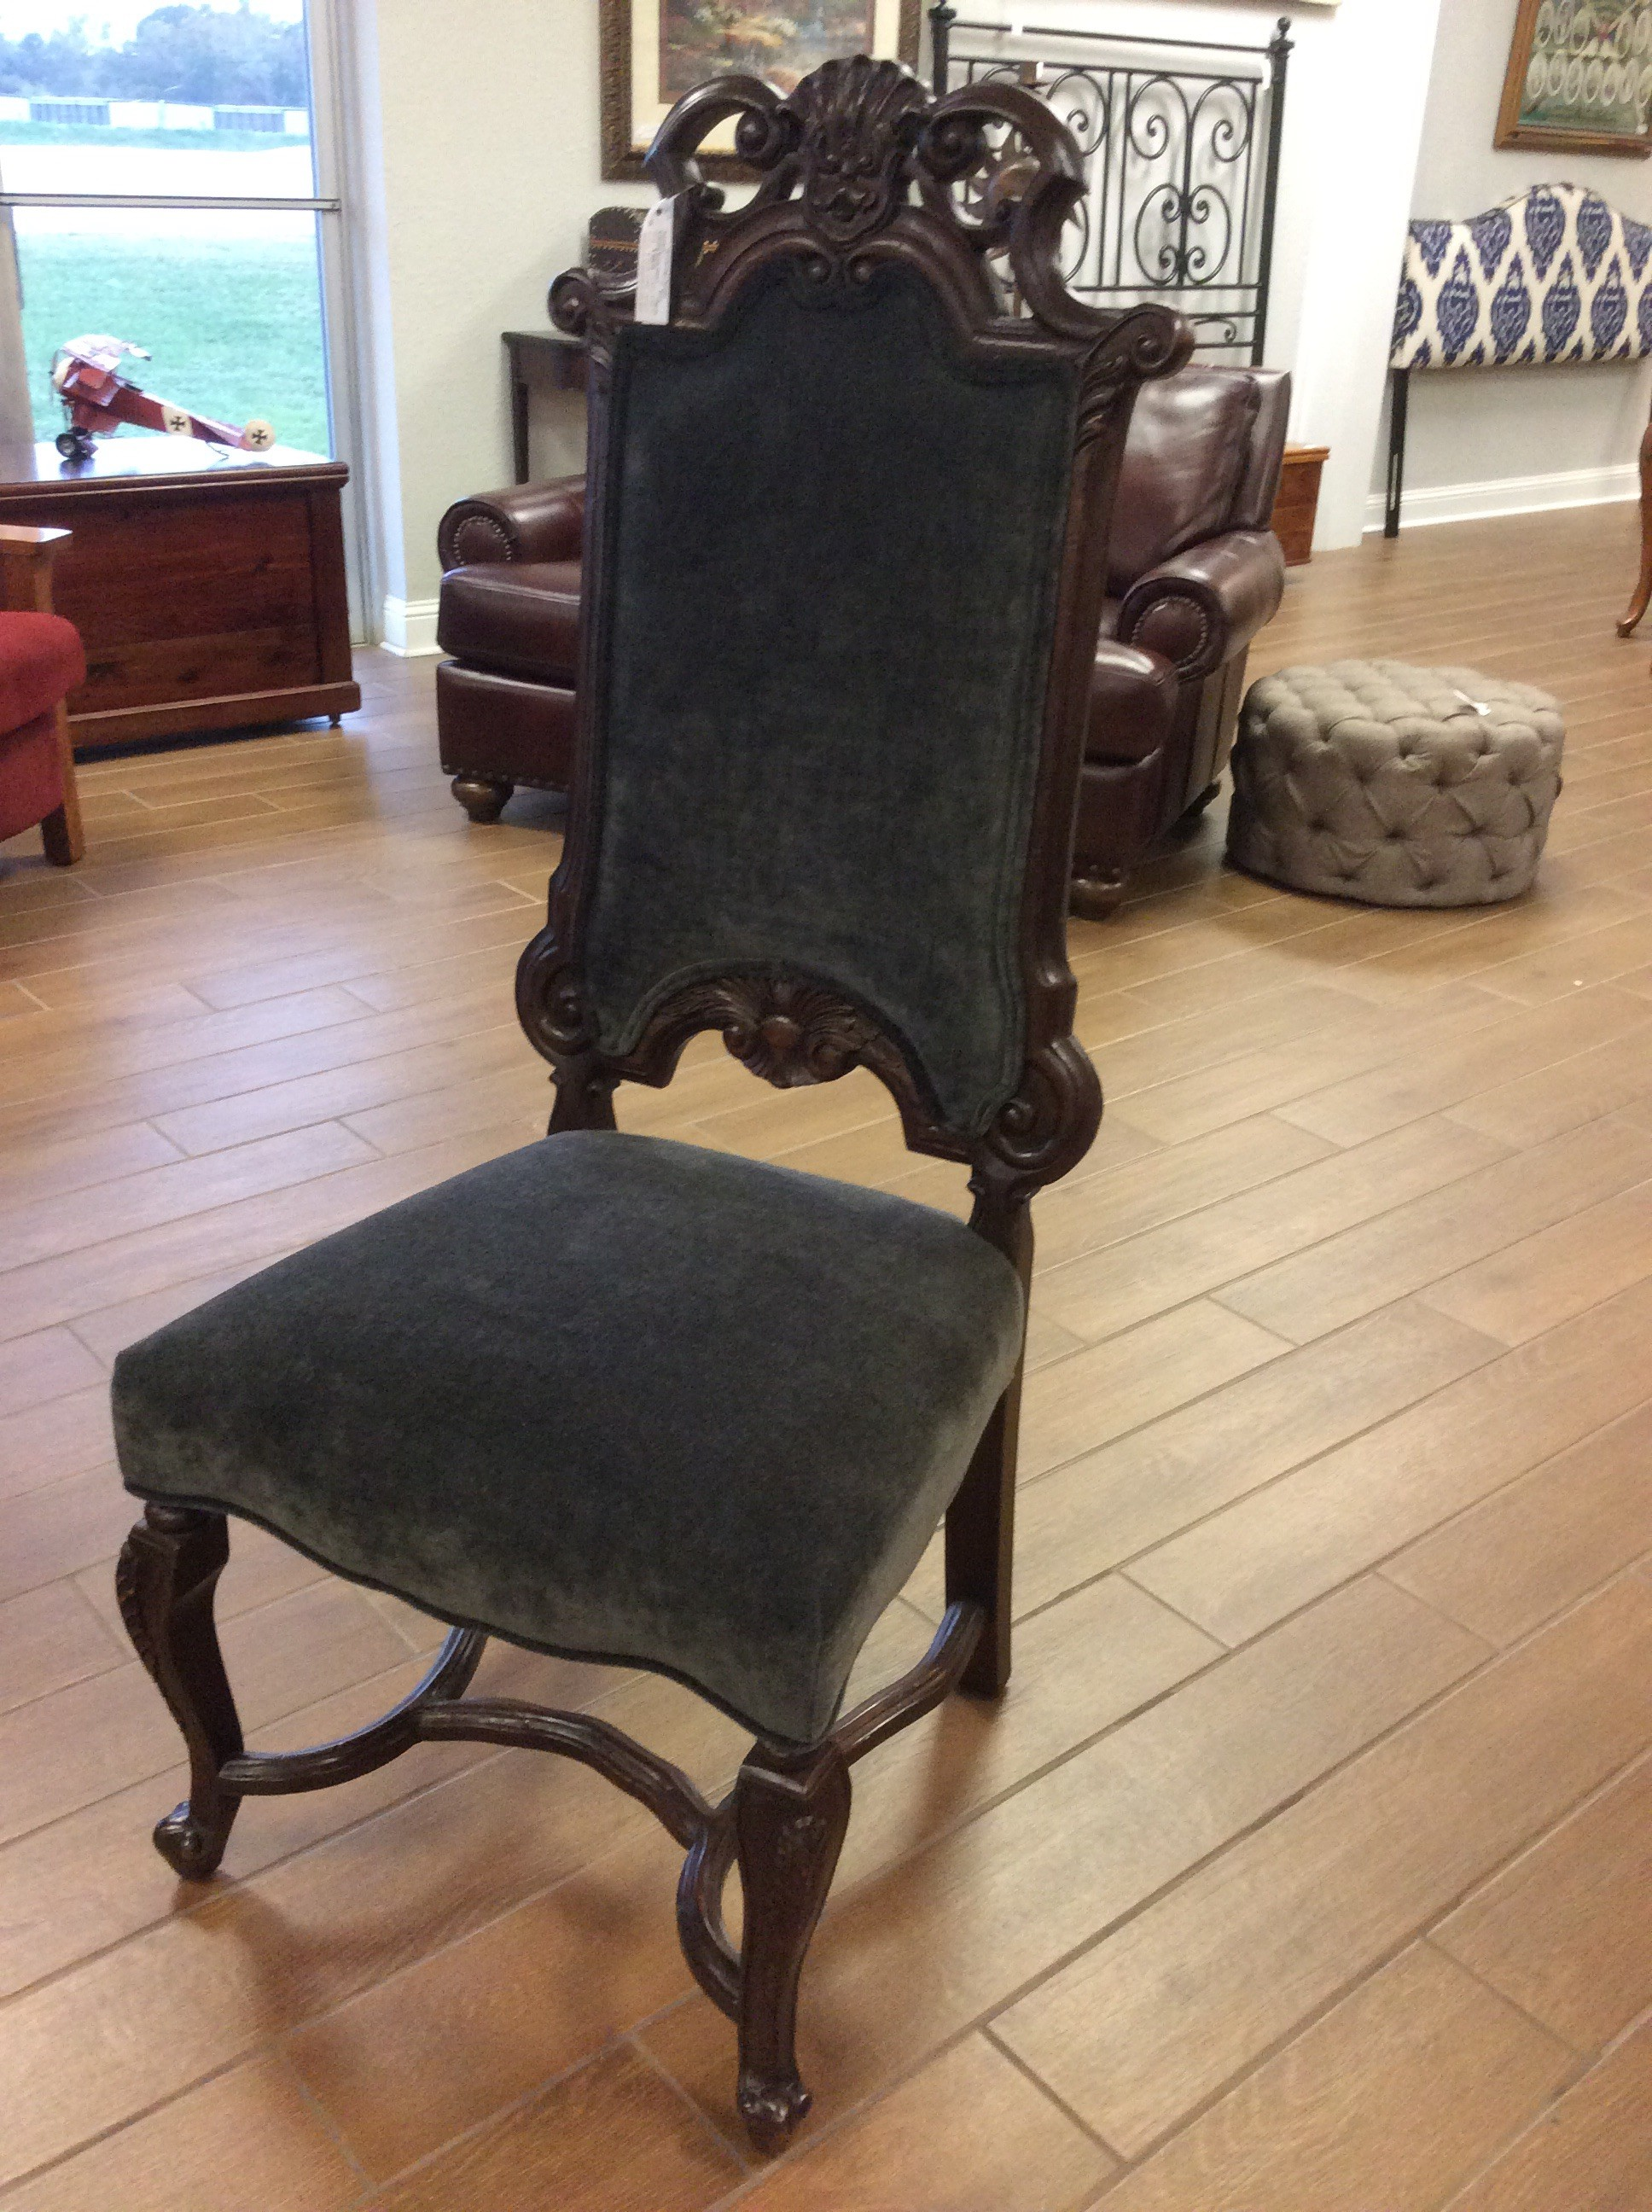 This set of dining room chairs, of which there are 6, are Baroque in style. Dramatic and commanding they feature detailed woodwork and are upholstered in a soft gray/blue velveteen. Great price at only $595 for the set!